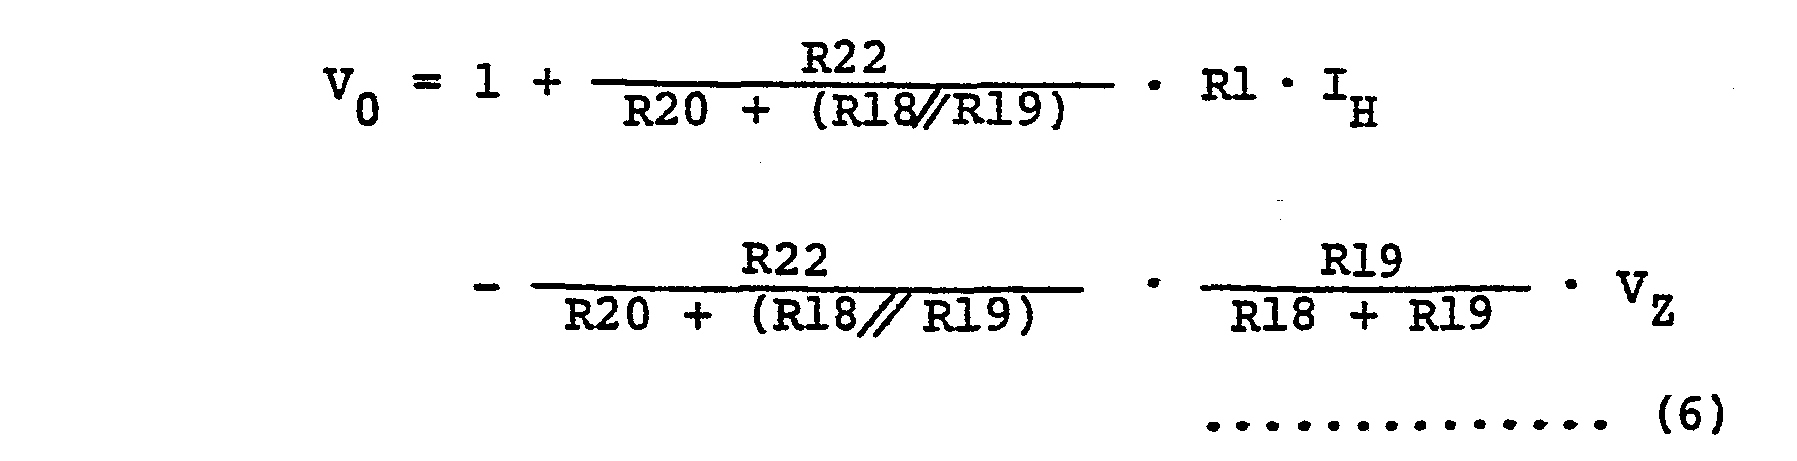 hight resolution of where i h is current flowing in the hot wire rh and v z is a zener voltage of the zener diode zd1 as described previously and symbol denotes a